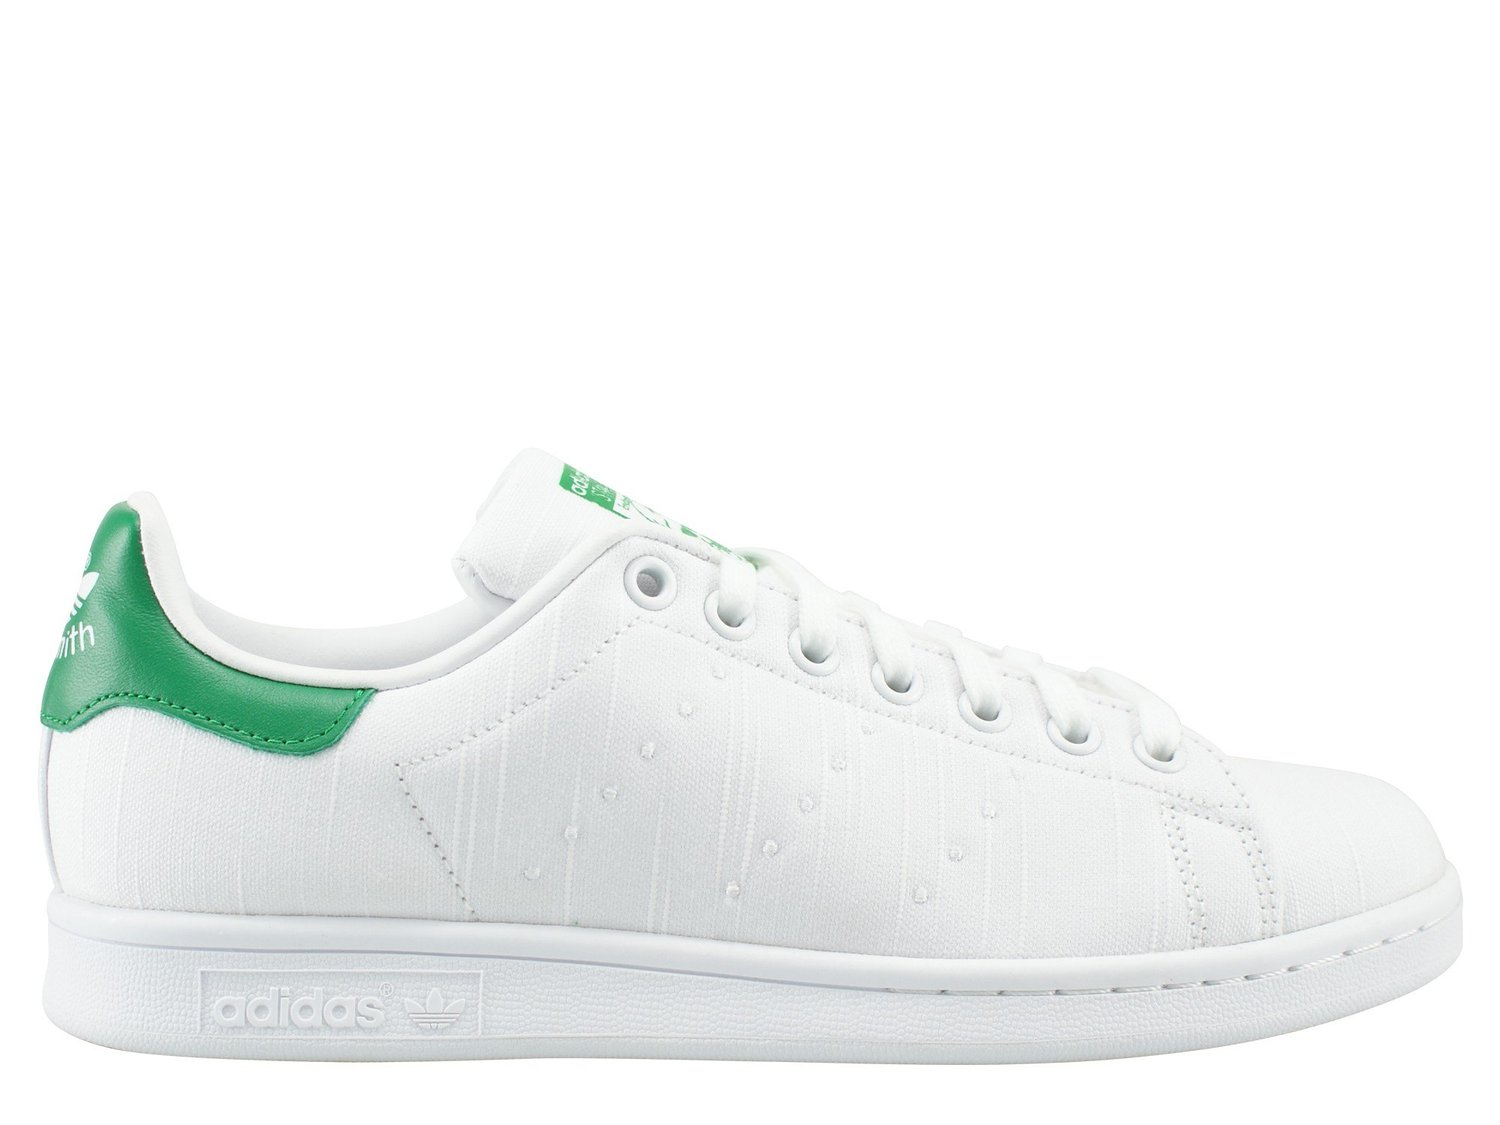 best service eee93 e94c3 Get Quotations · adidas Originals Stan Smith W White Green Textile Trainers